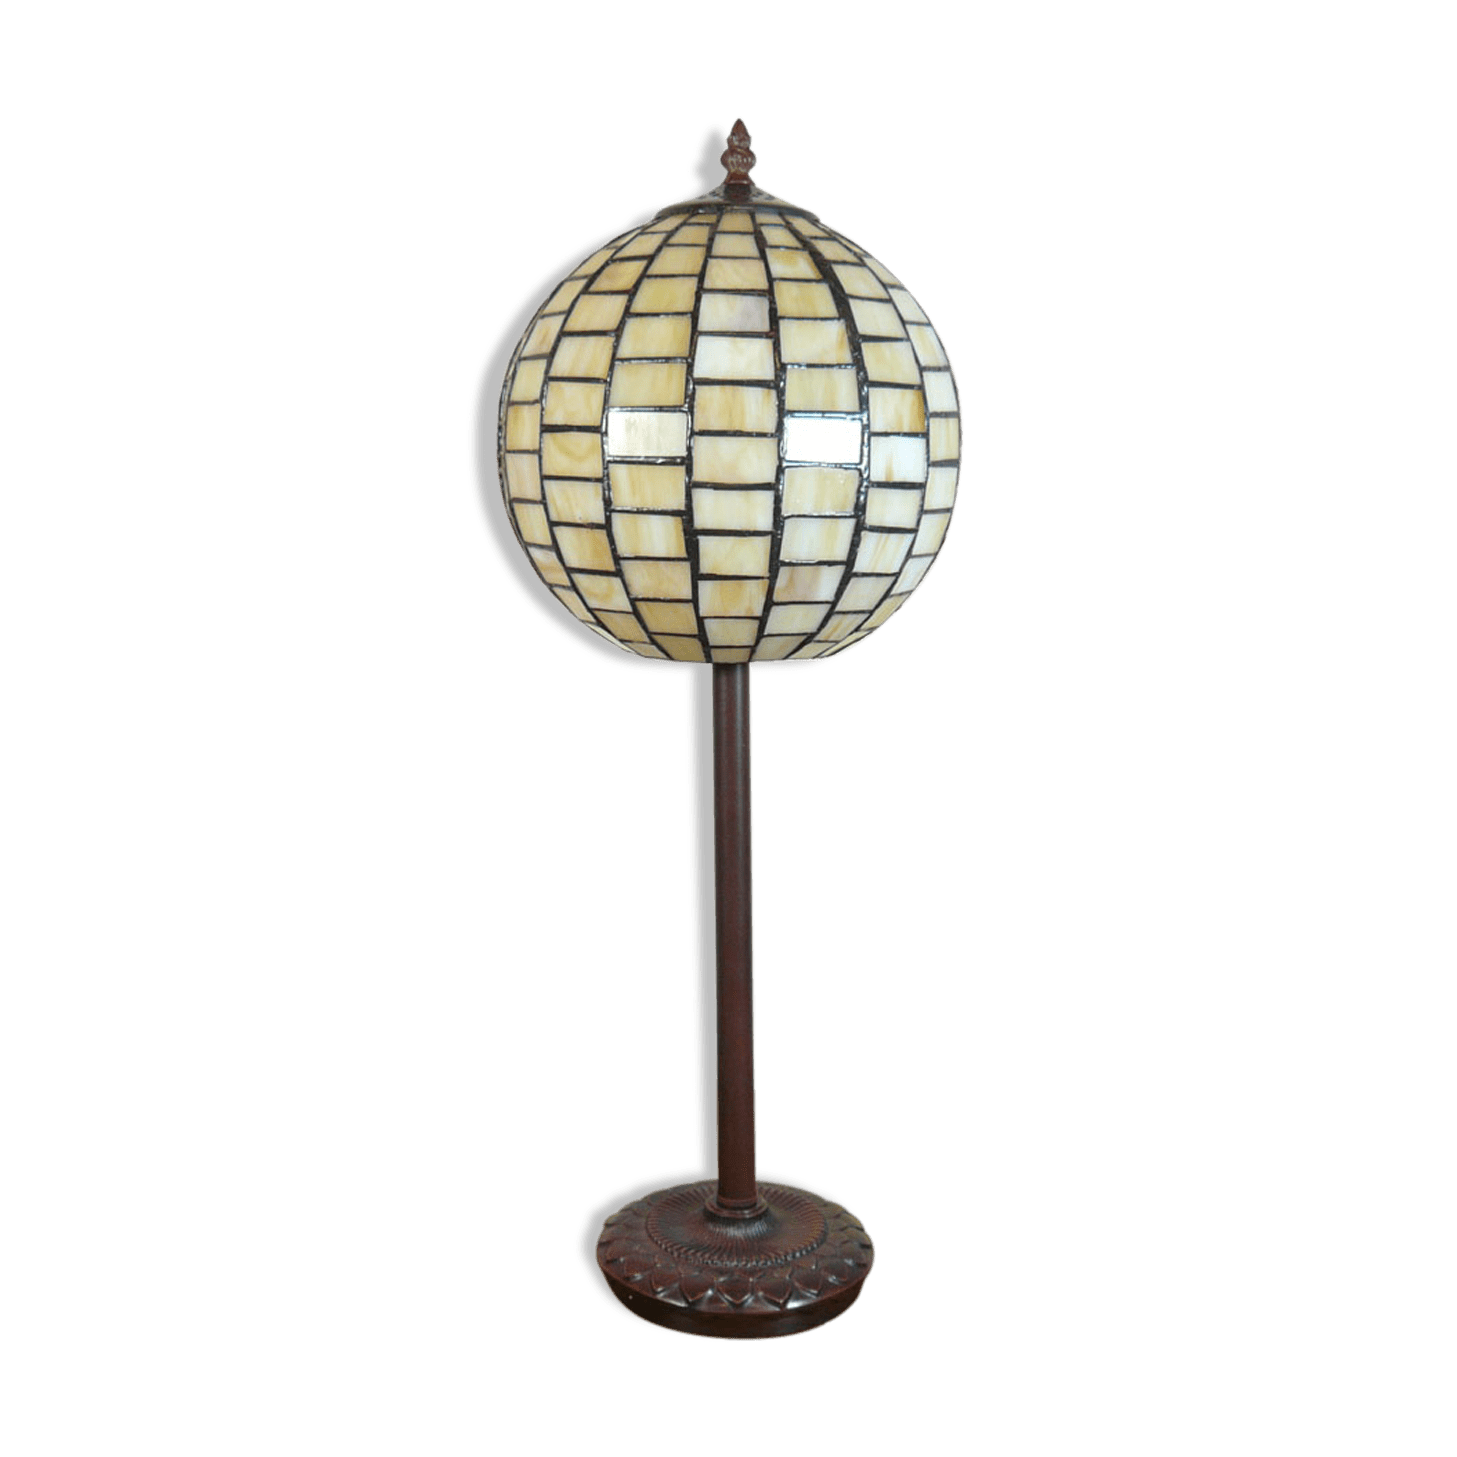 Eßtischlampe Tiffany Art Deco Tafellamp Light Flushmount Tiffany Ceiling Lamp